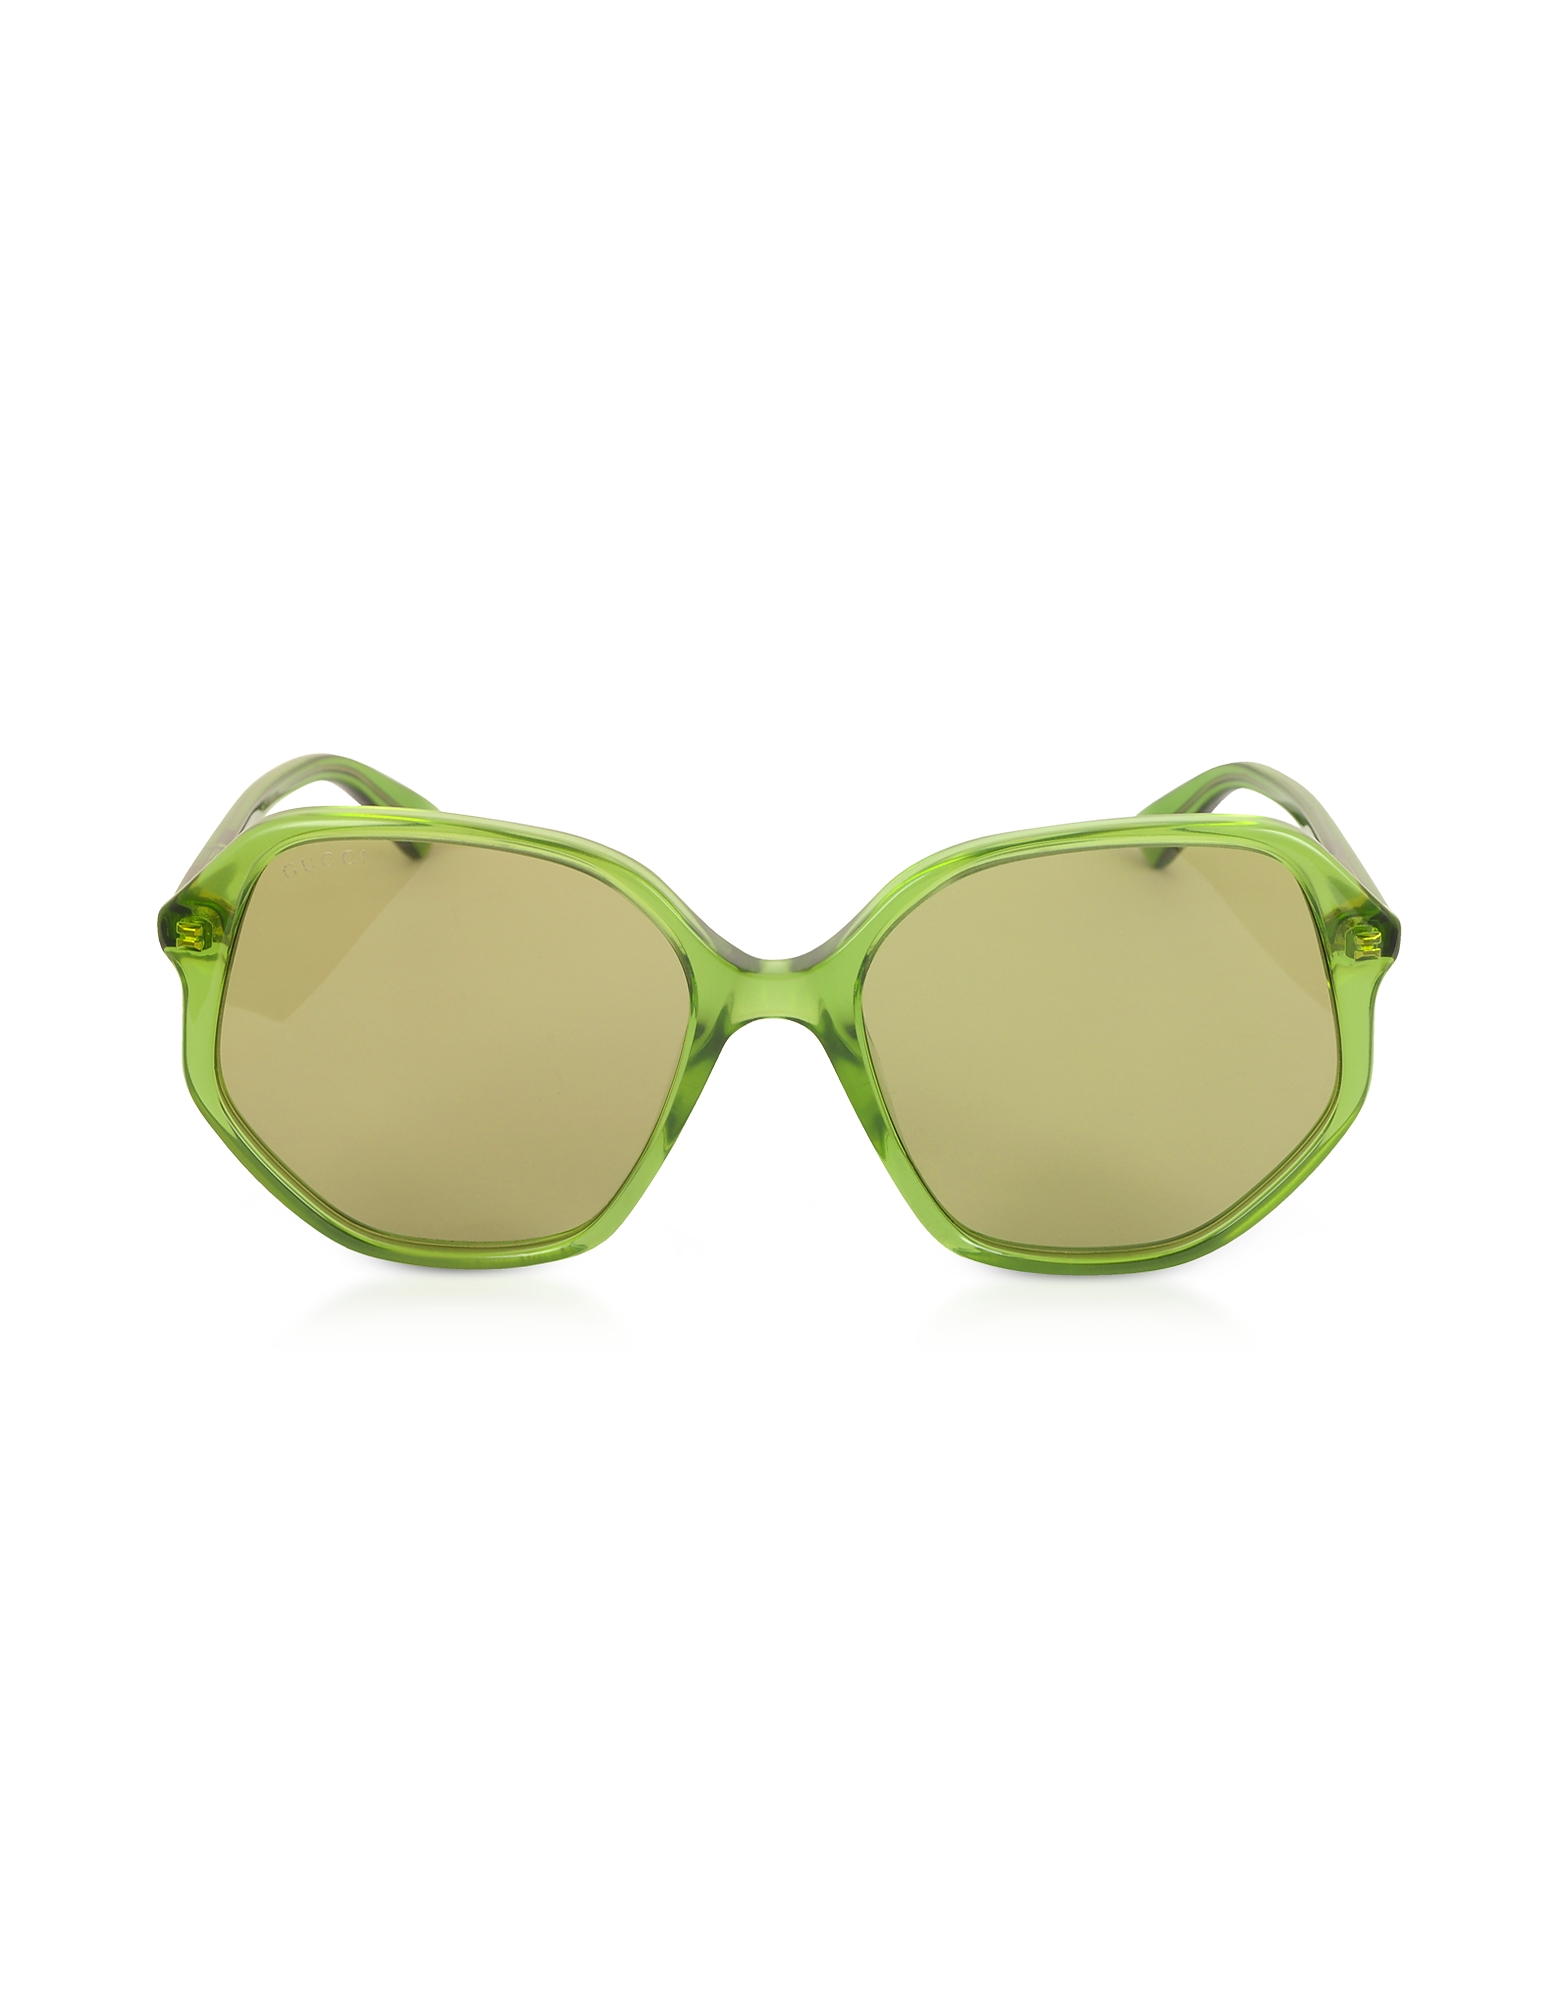 Gucci Designer Sunglasses, GG0258S Geometric-frame Transparent Green Acetate Sunglasses